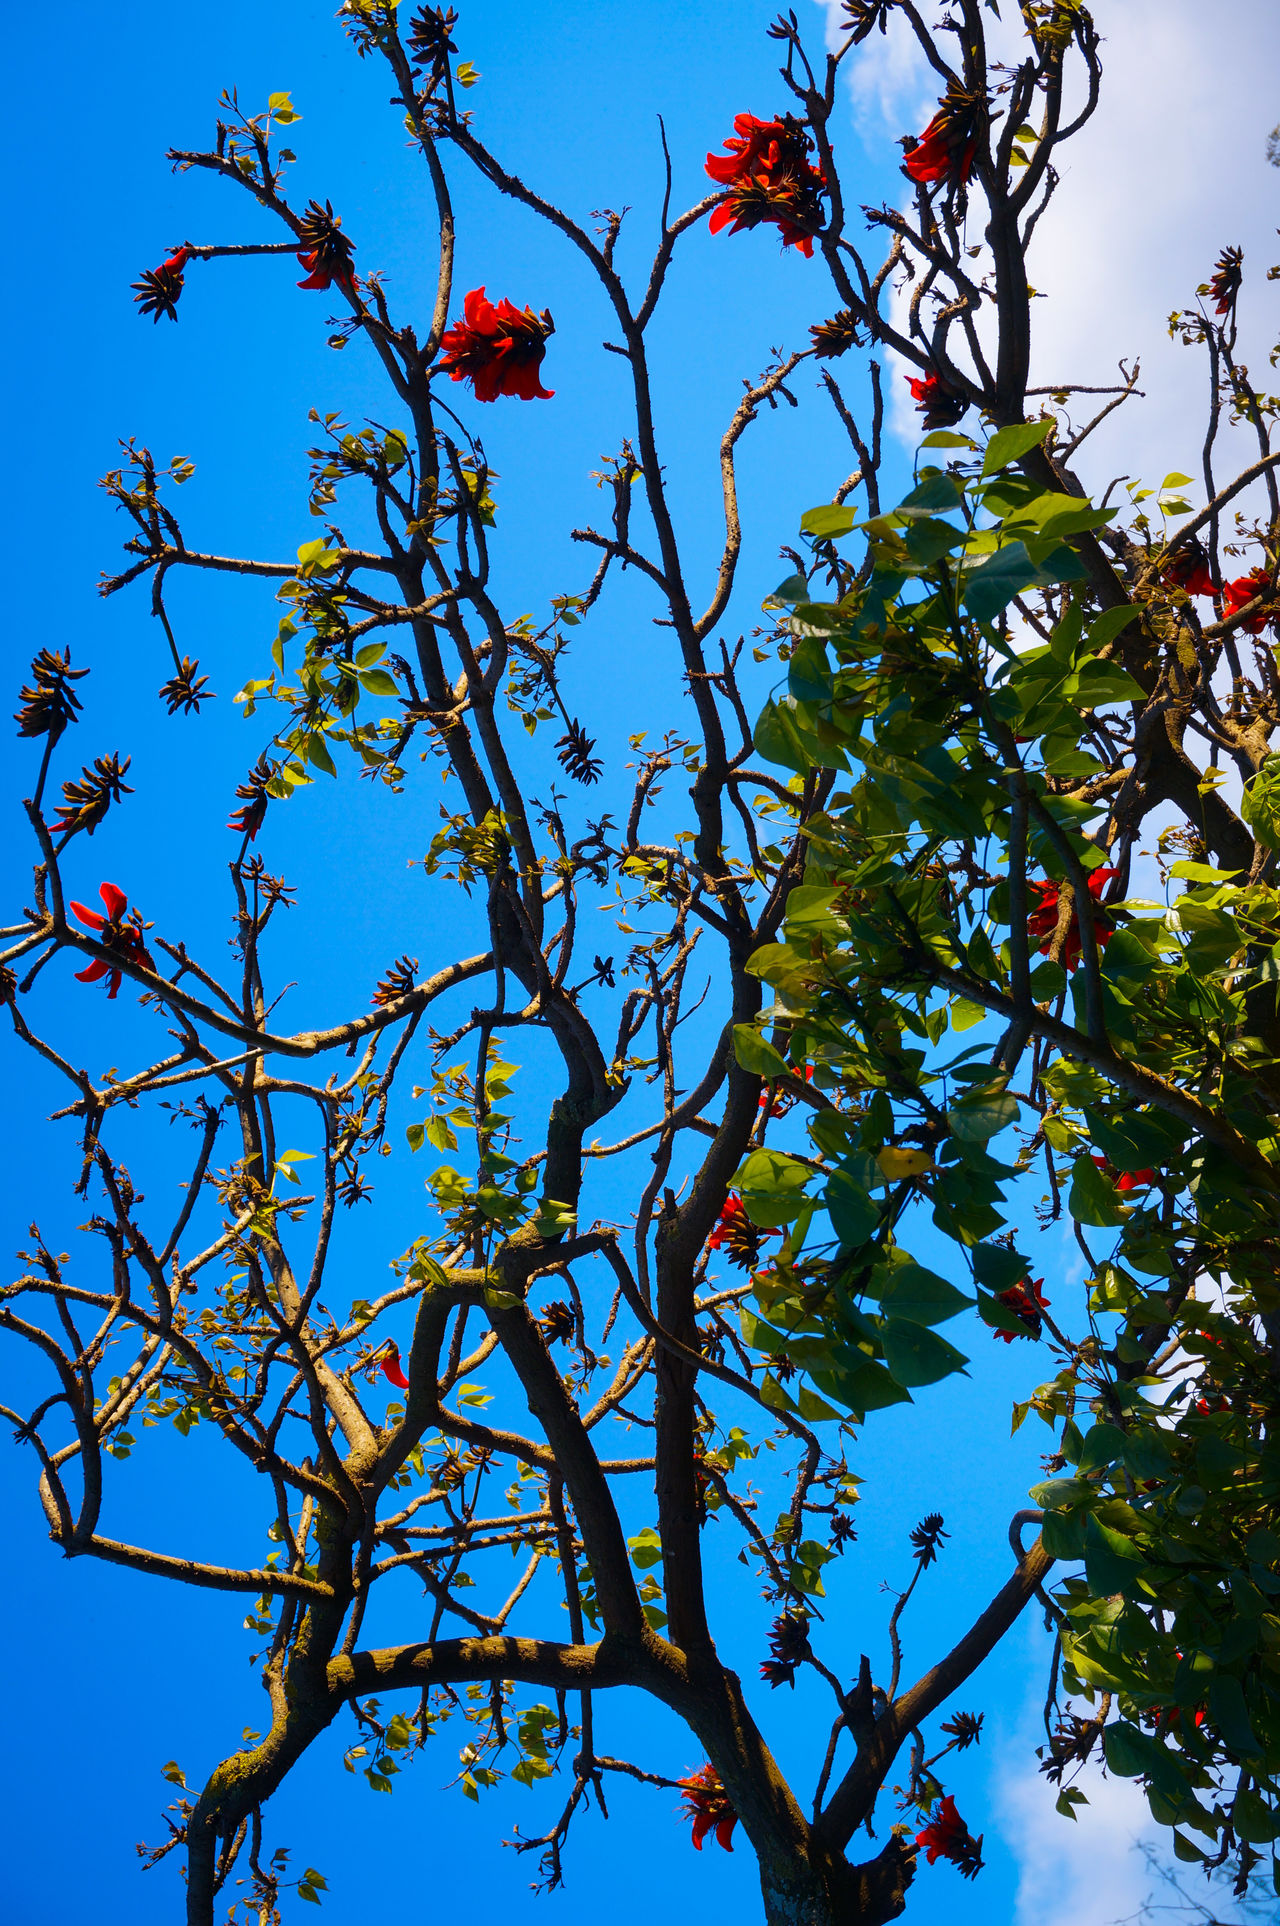 Japanese  Ambiance🏯 🌴🌸🥀🌻 Autumn Colors Autumn Leaves Under The Tree Tree Branch Red Low Angle View Sky Nature Blue Growth Plant Flower Leaf Freshness Urban Nature Life Mobilephotography Shootermag AMPt_community Vscocam VSCO Snapshots Of Life